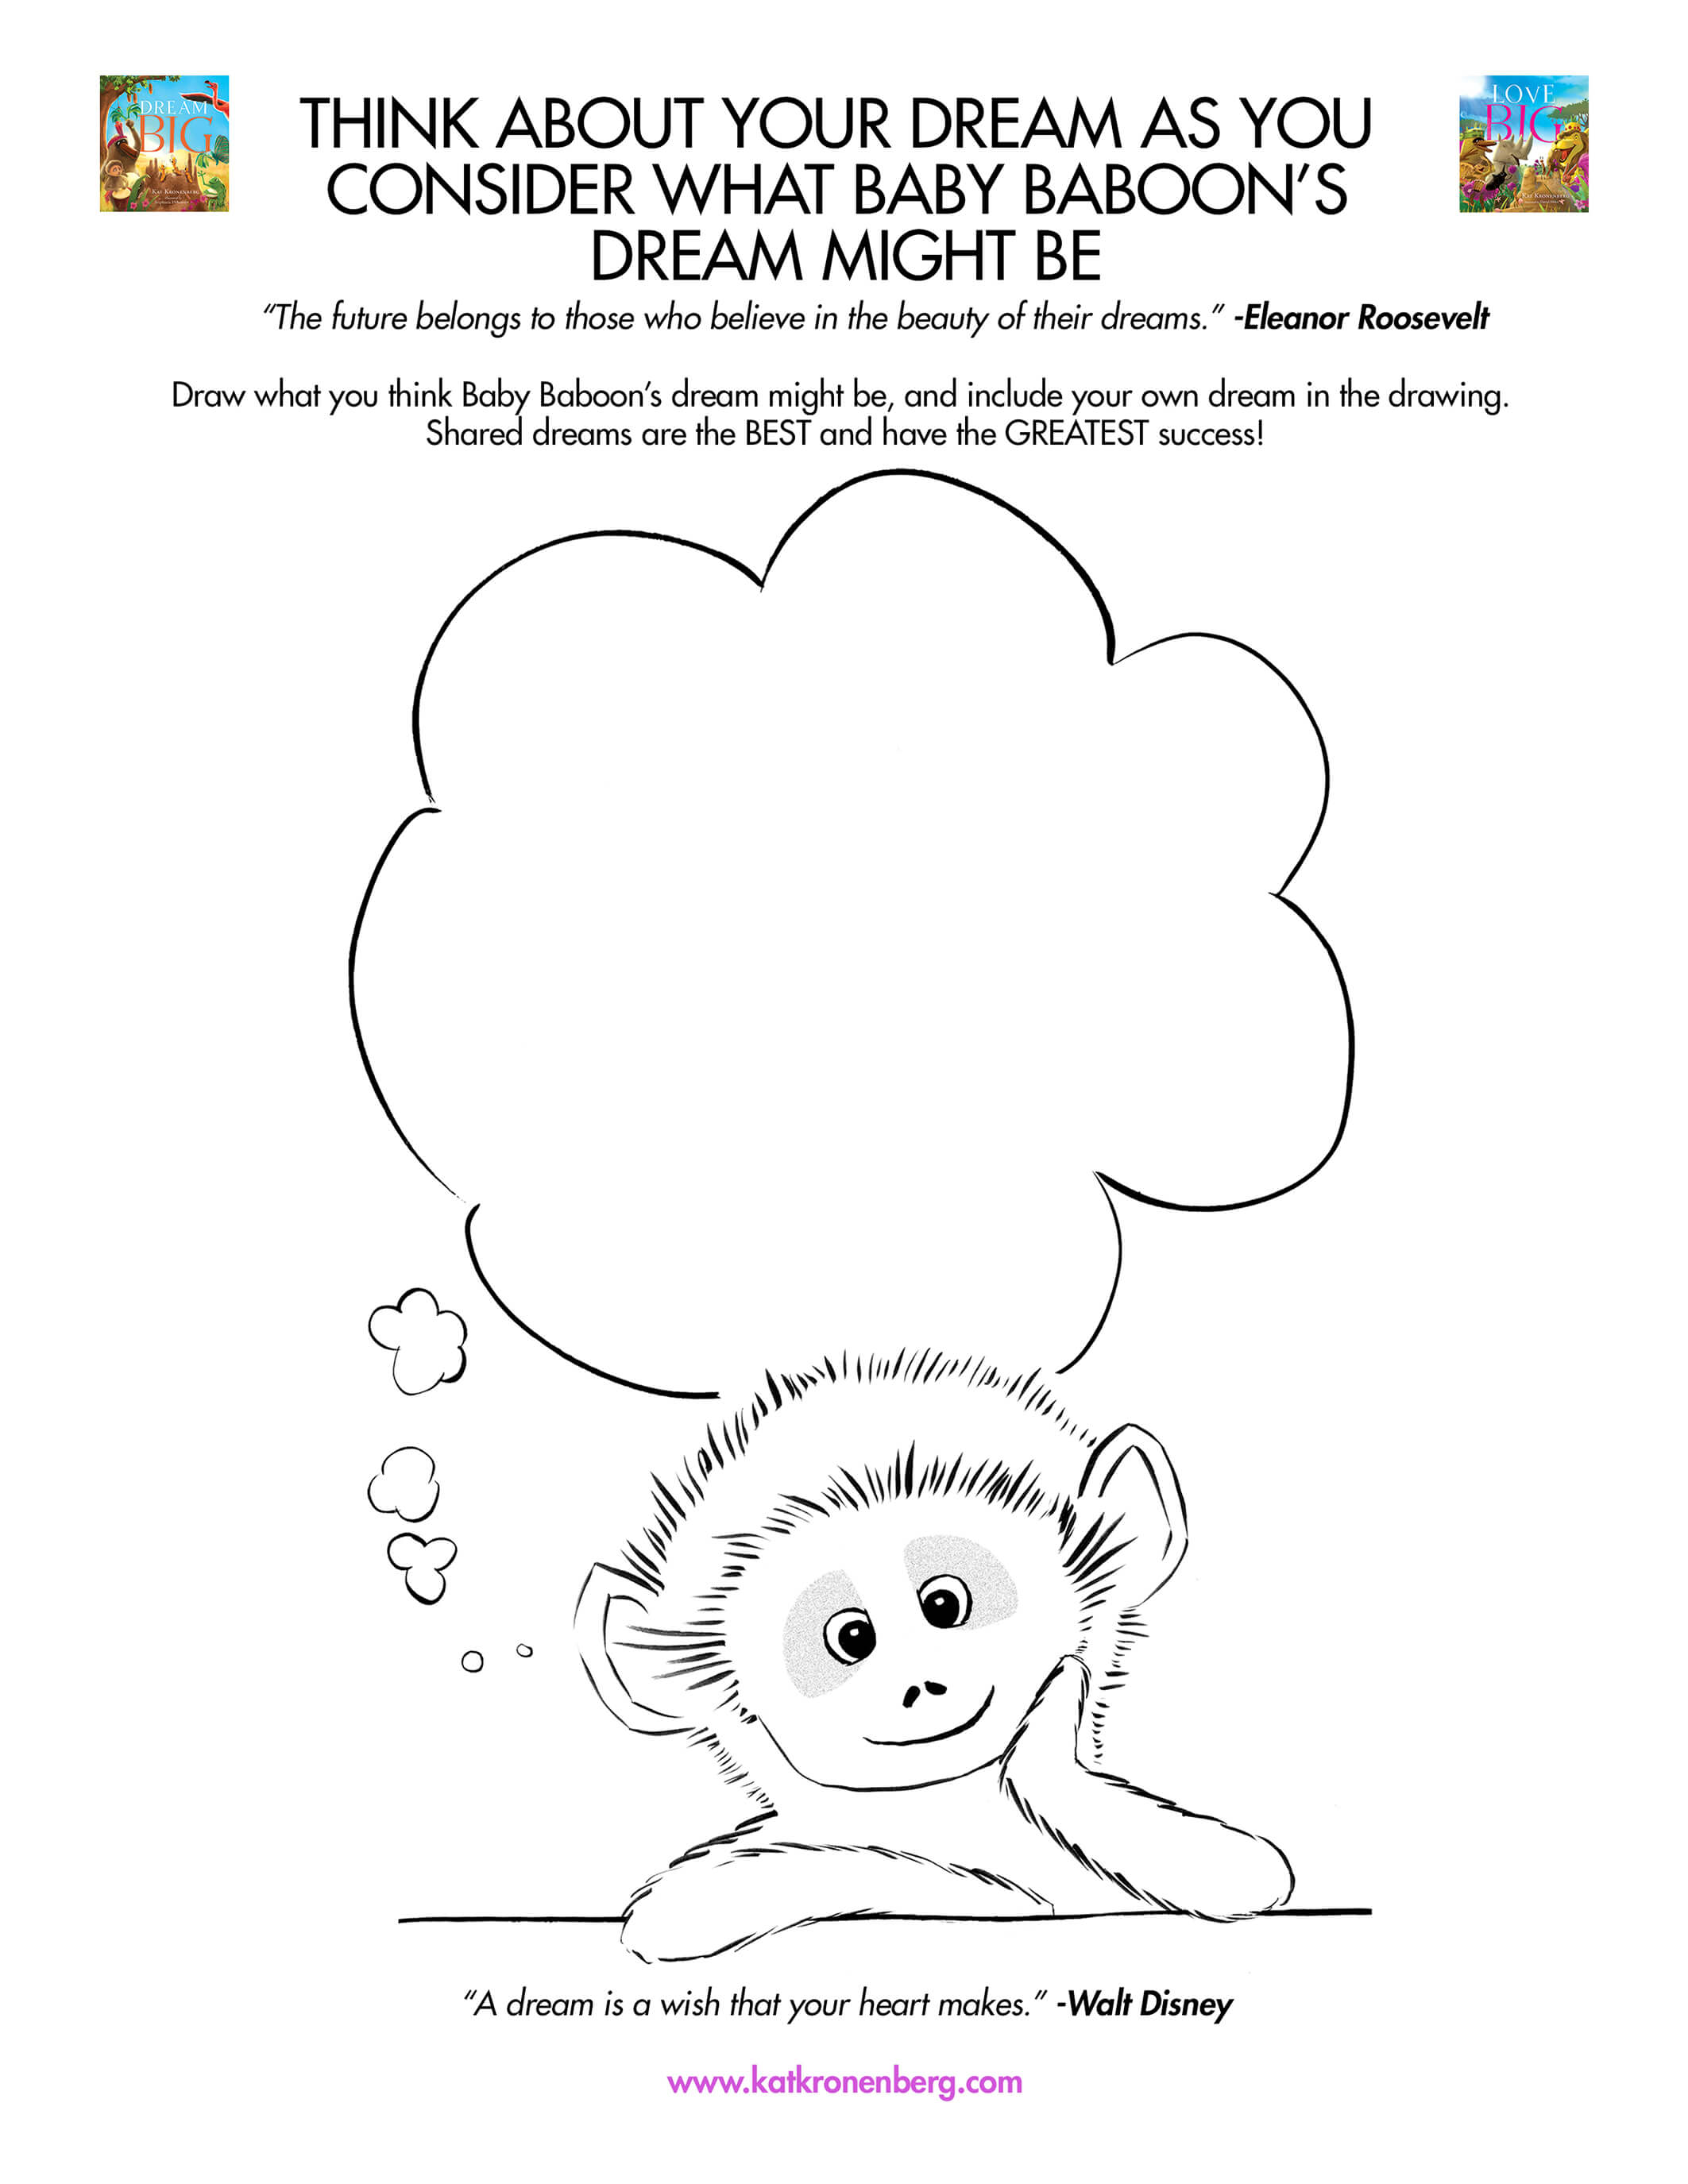 Motivational activity download for kids: Baby Baboon's Dream